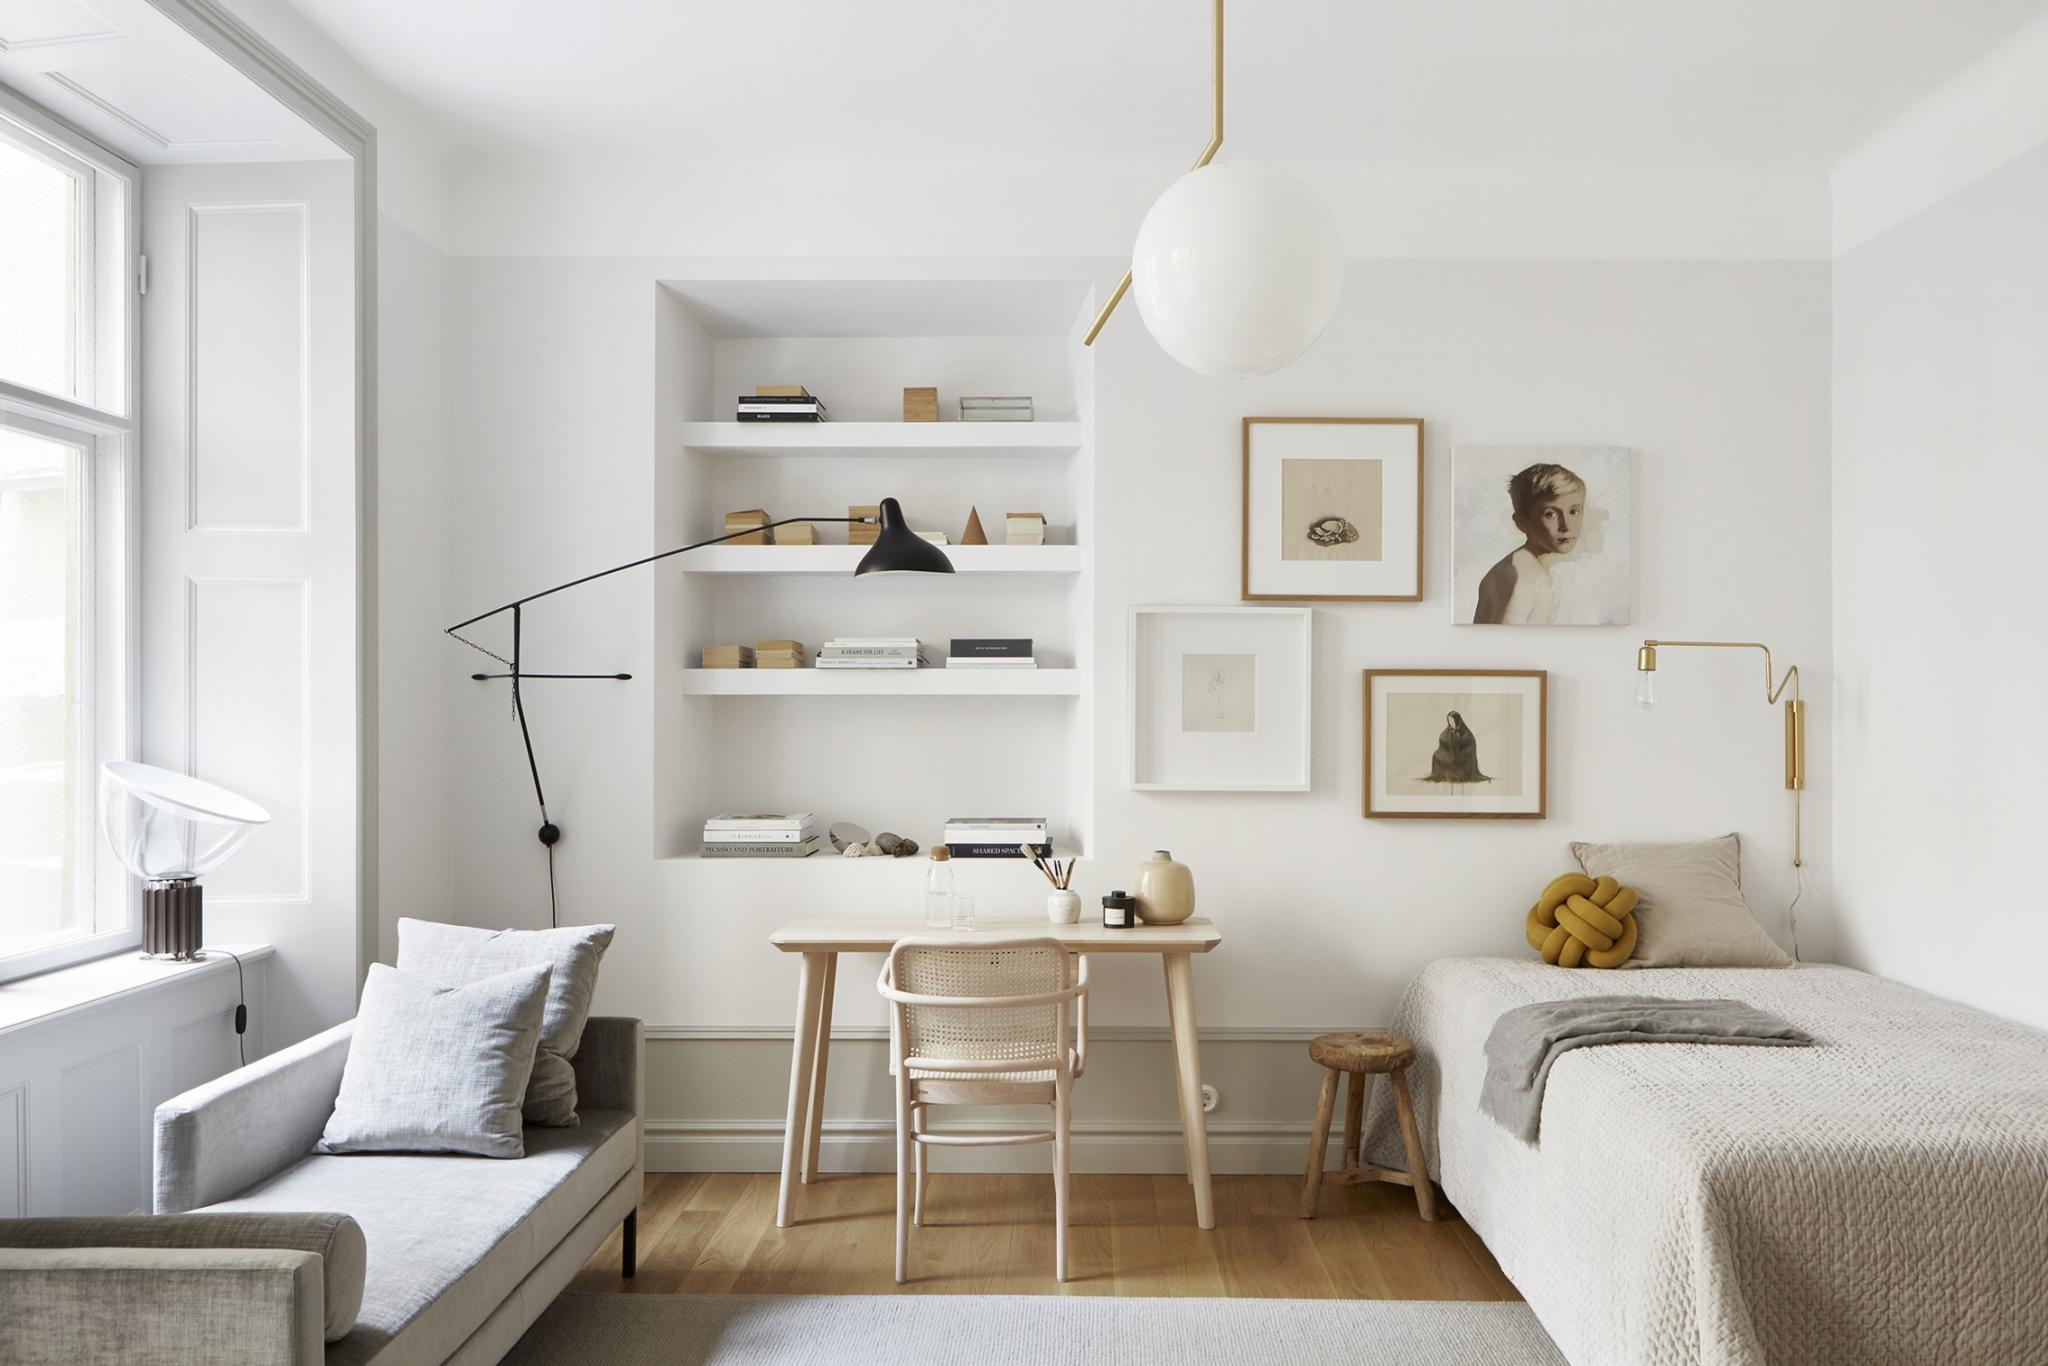 Warm Minimalistisch Interieur A Small Studio Apartment – Inattendu